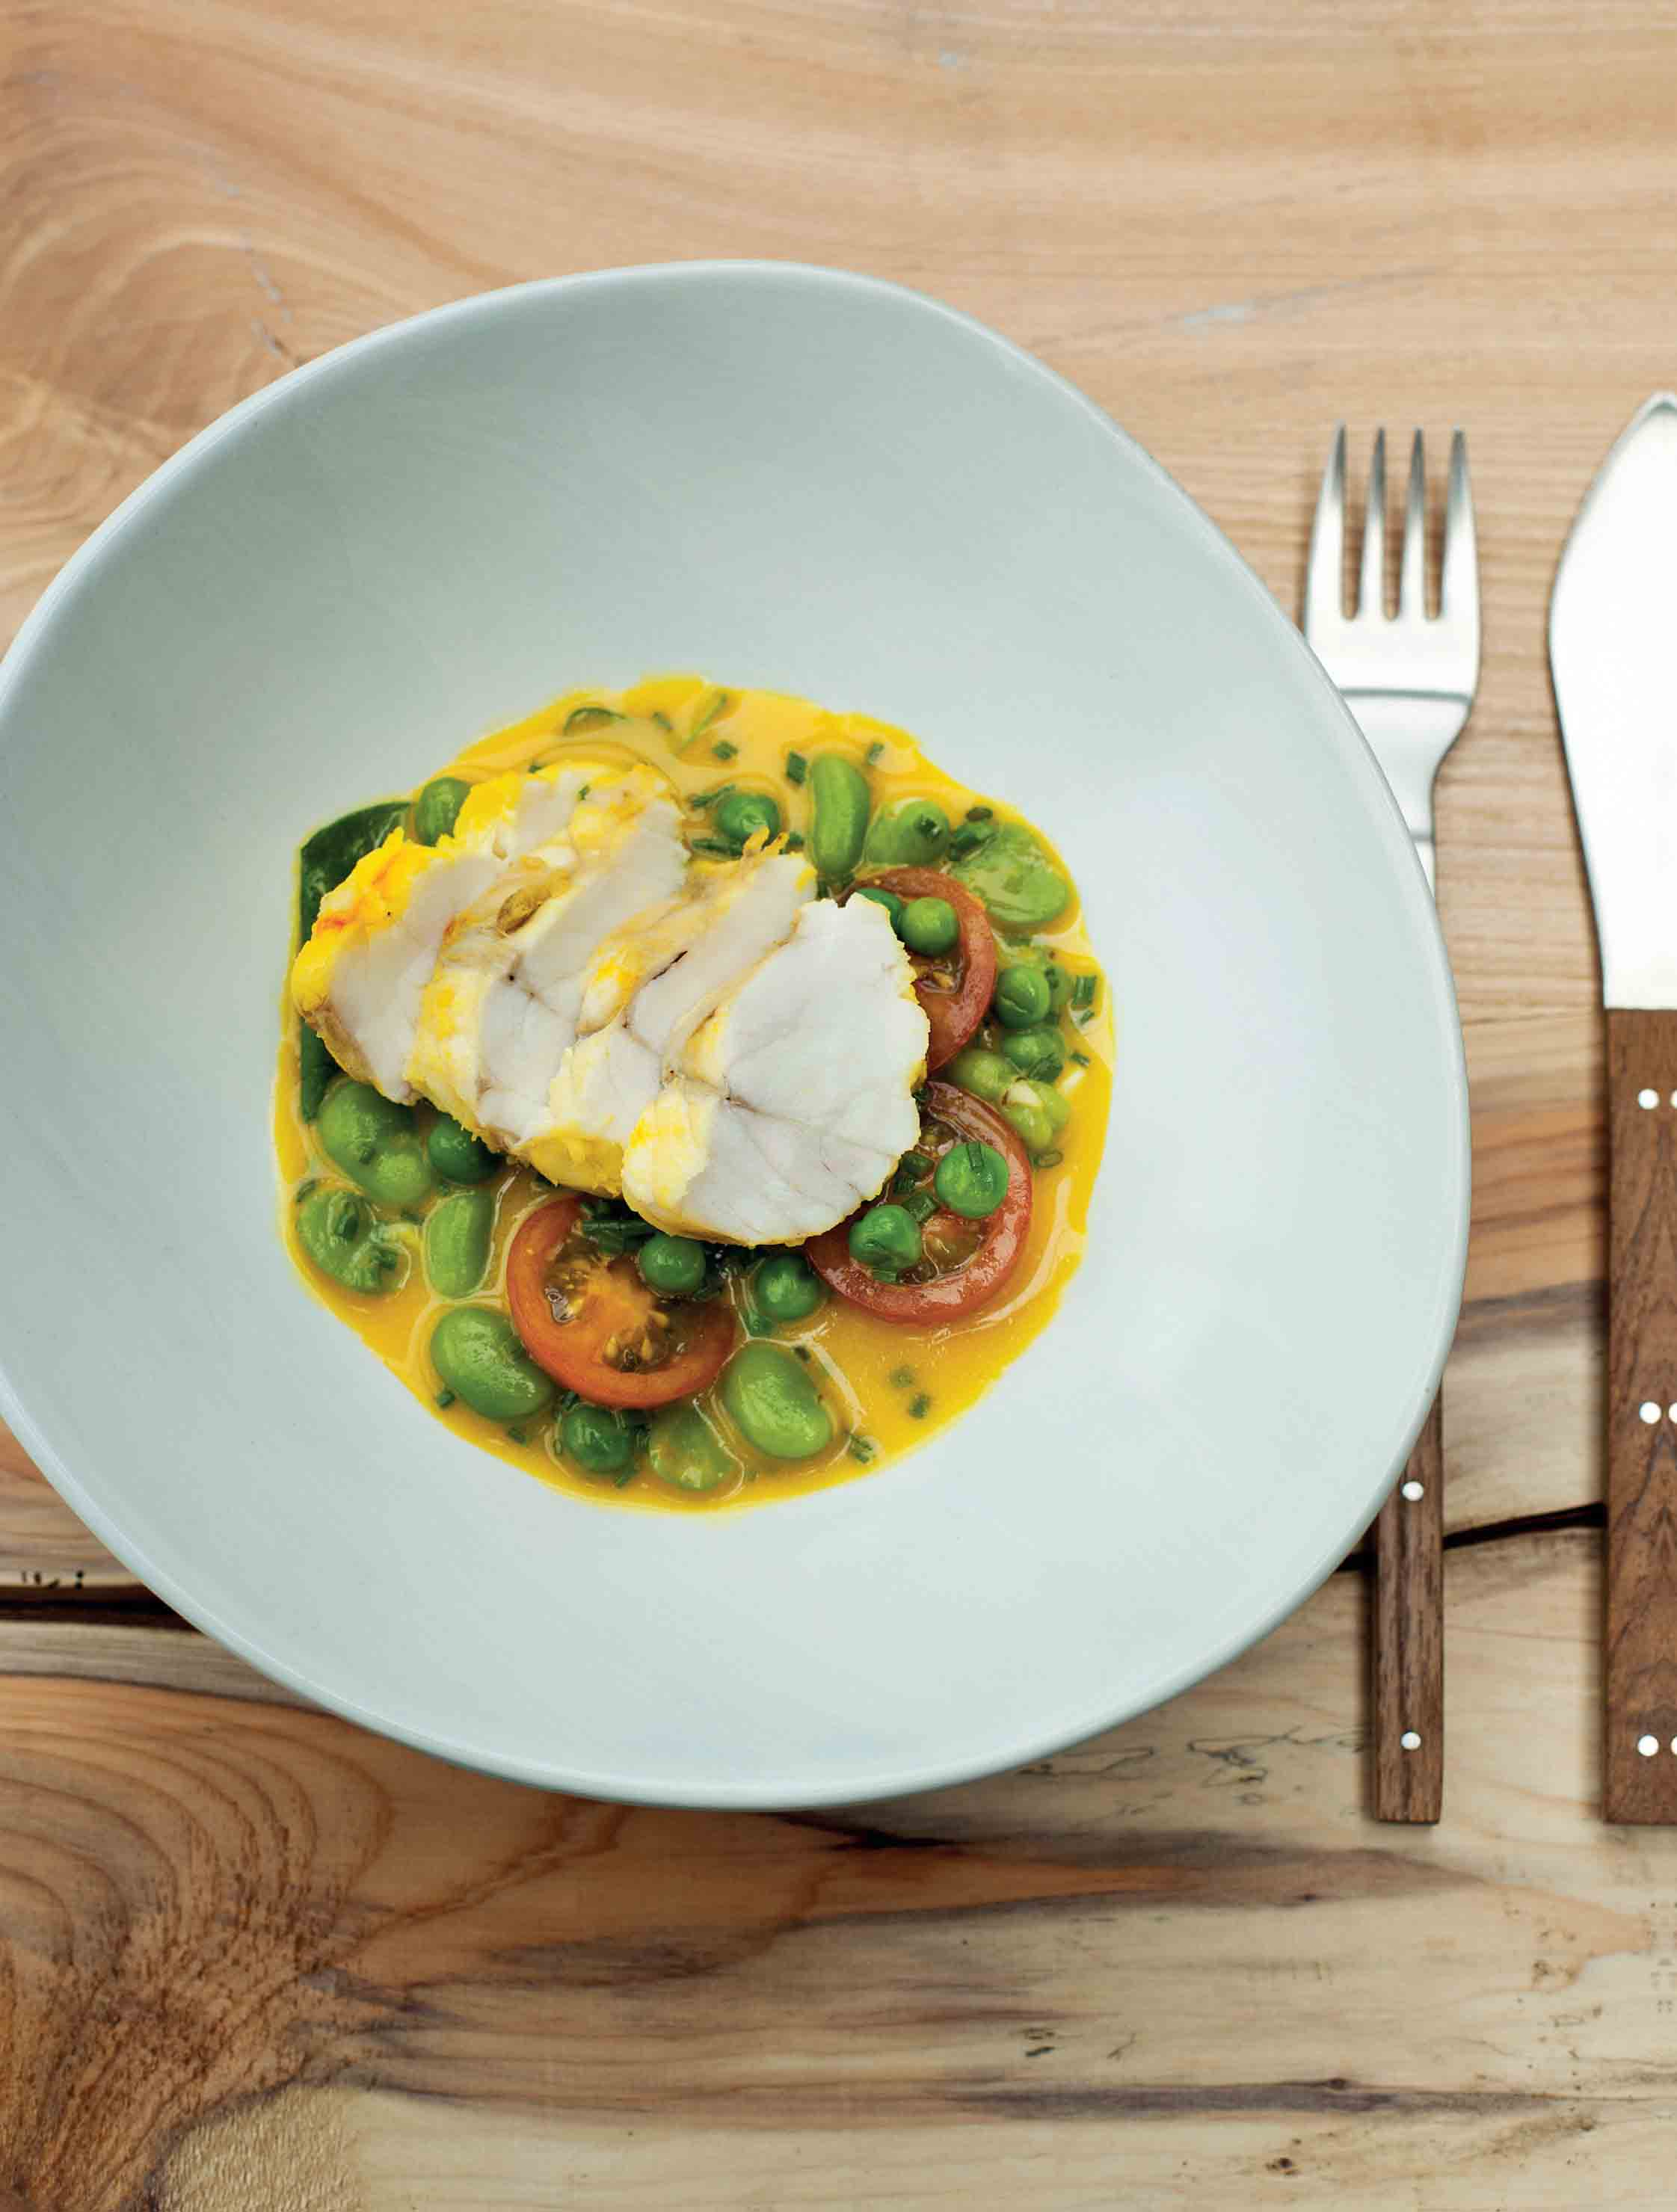 Monkfish poached in a saffron broth with peas and broad beans